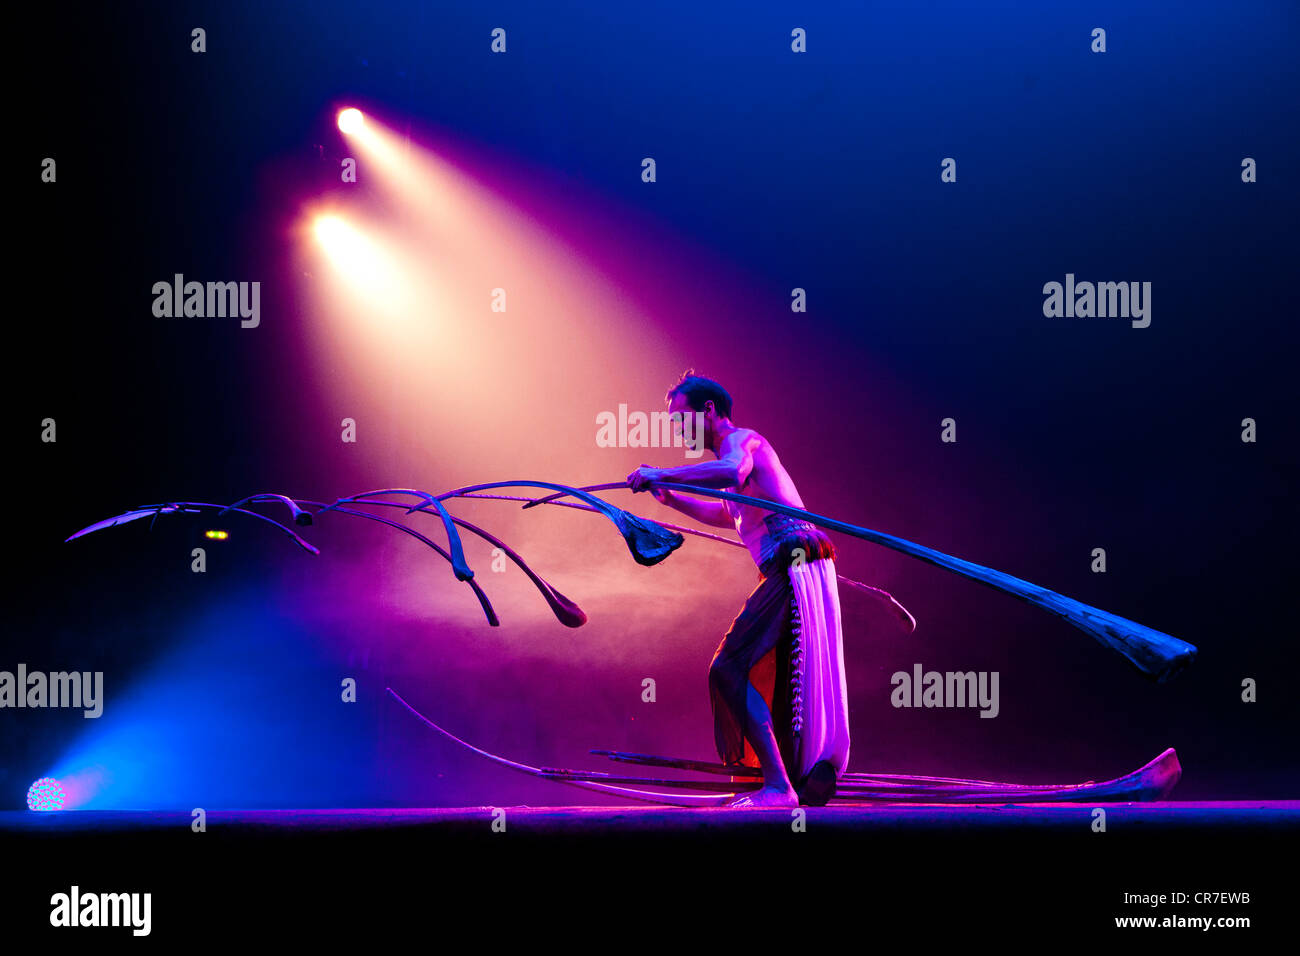 Balancing act where the Swiss performer Rigolo uses 13 palm branches to create a light suspended sculpture - Stock Image